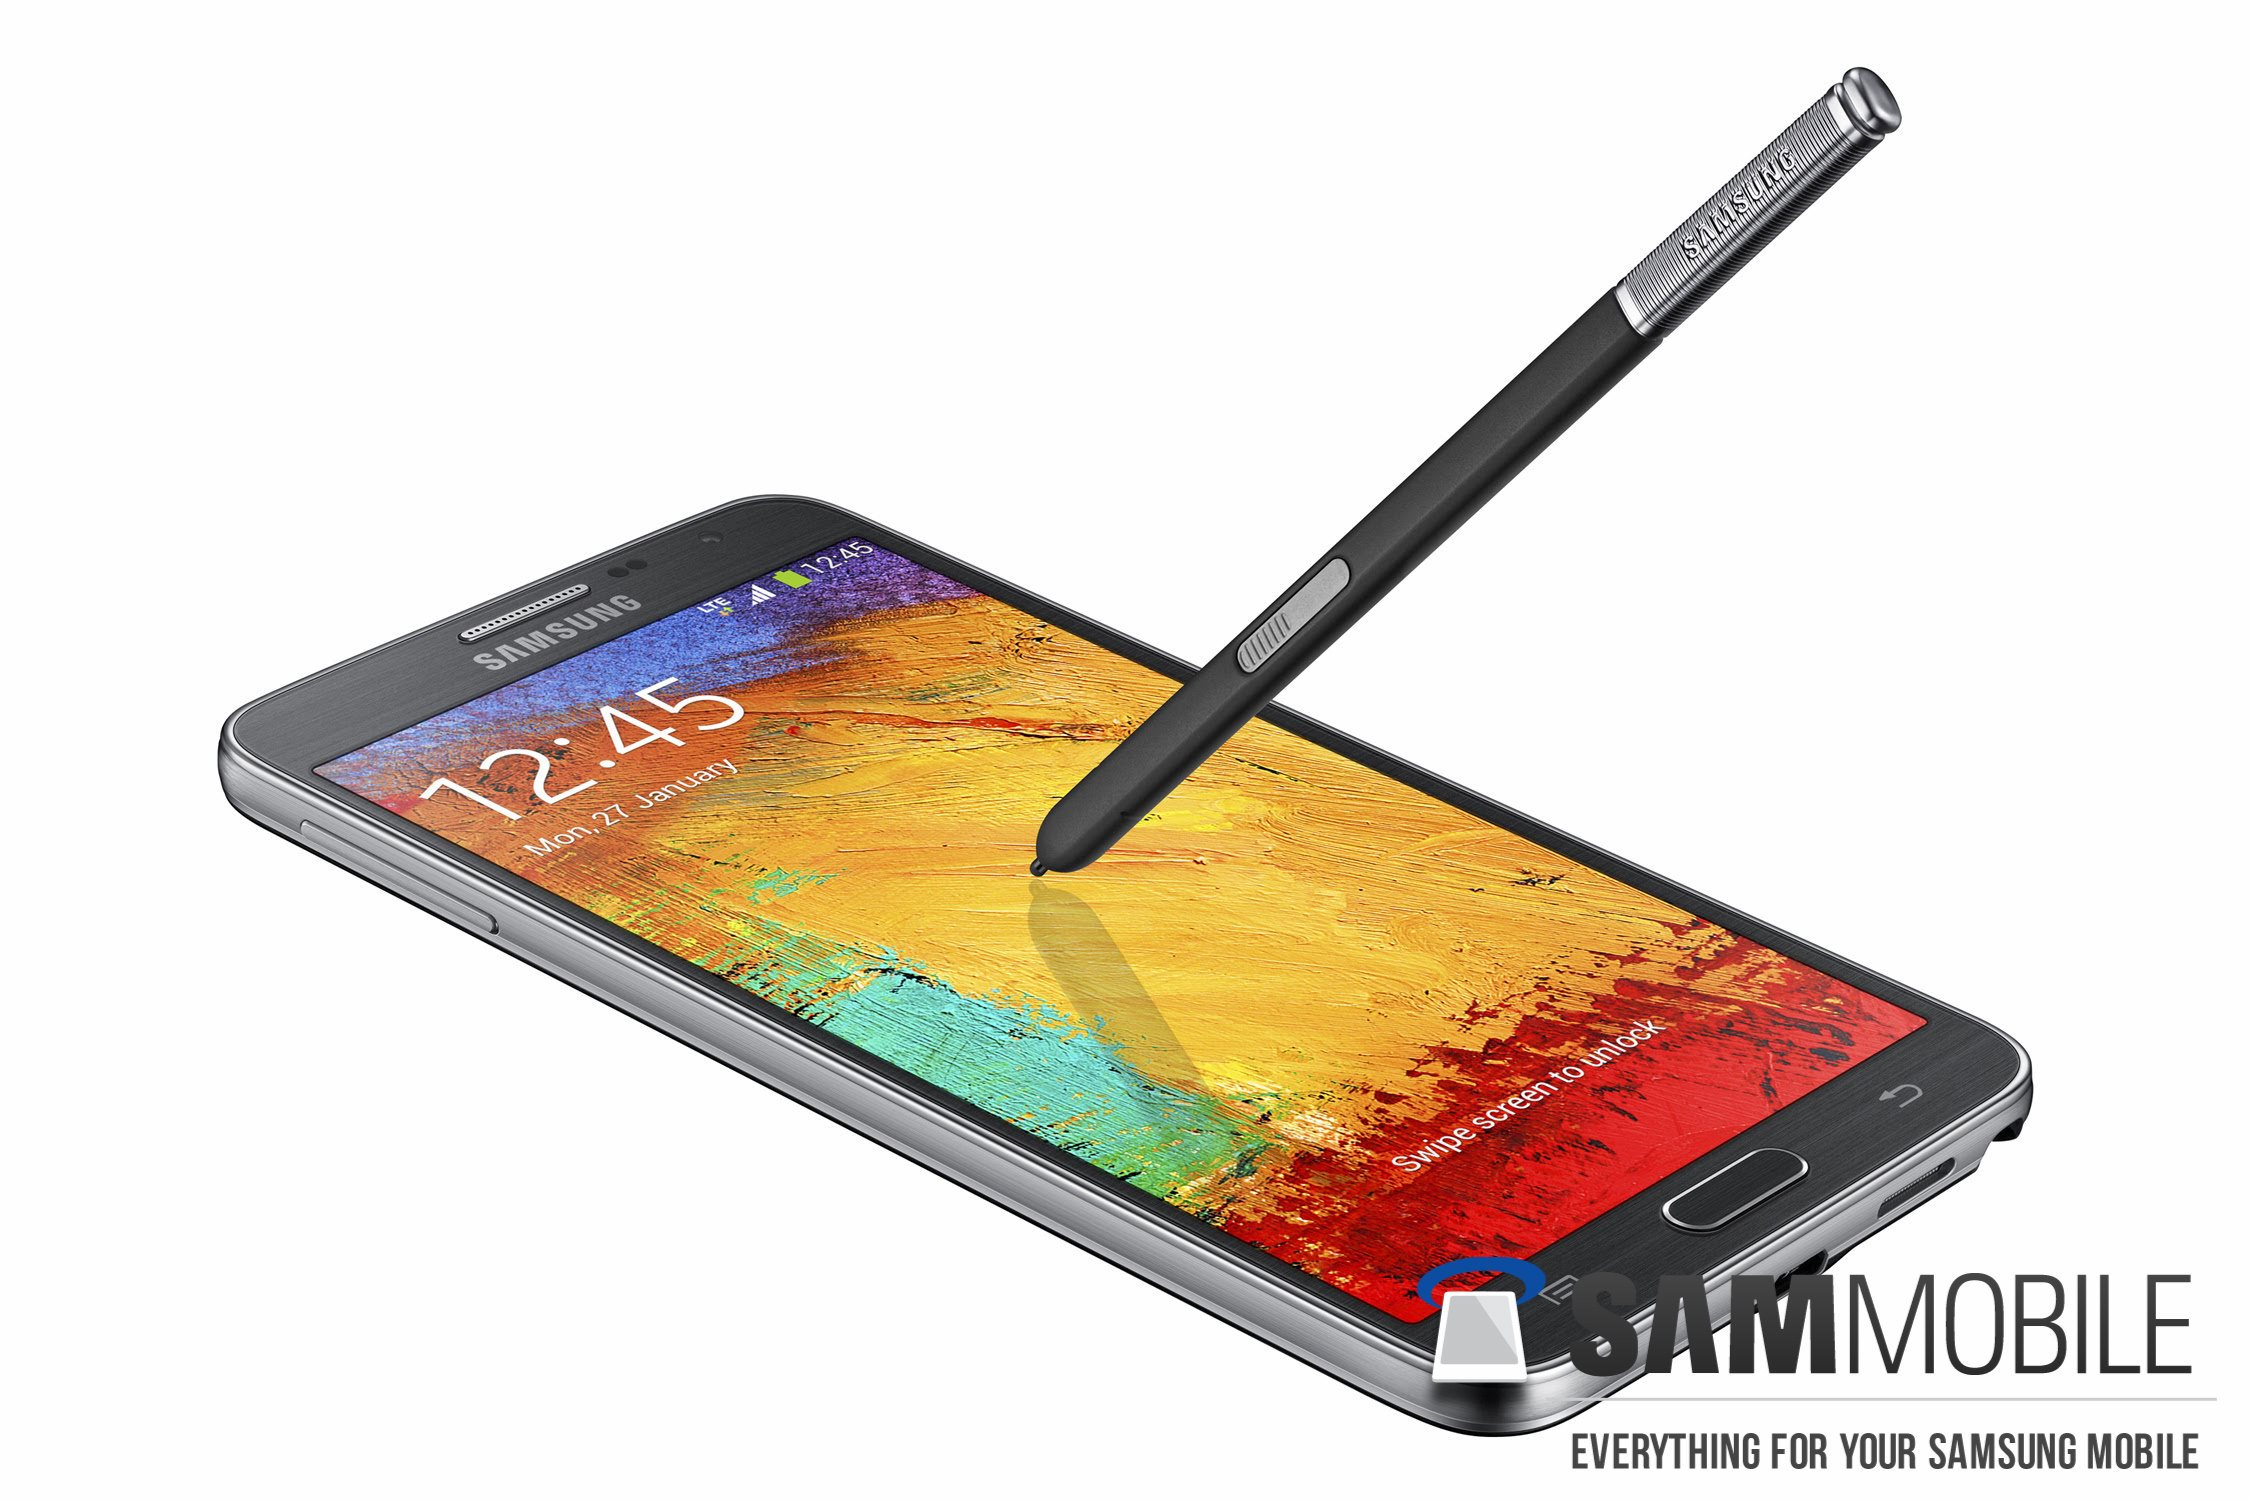 GALAXY Note 3 NEO SamMobile 4